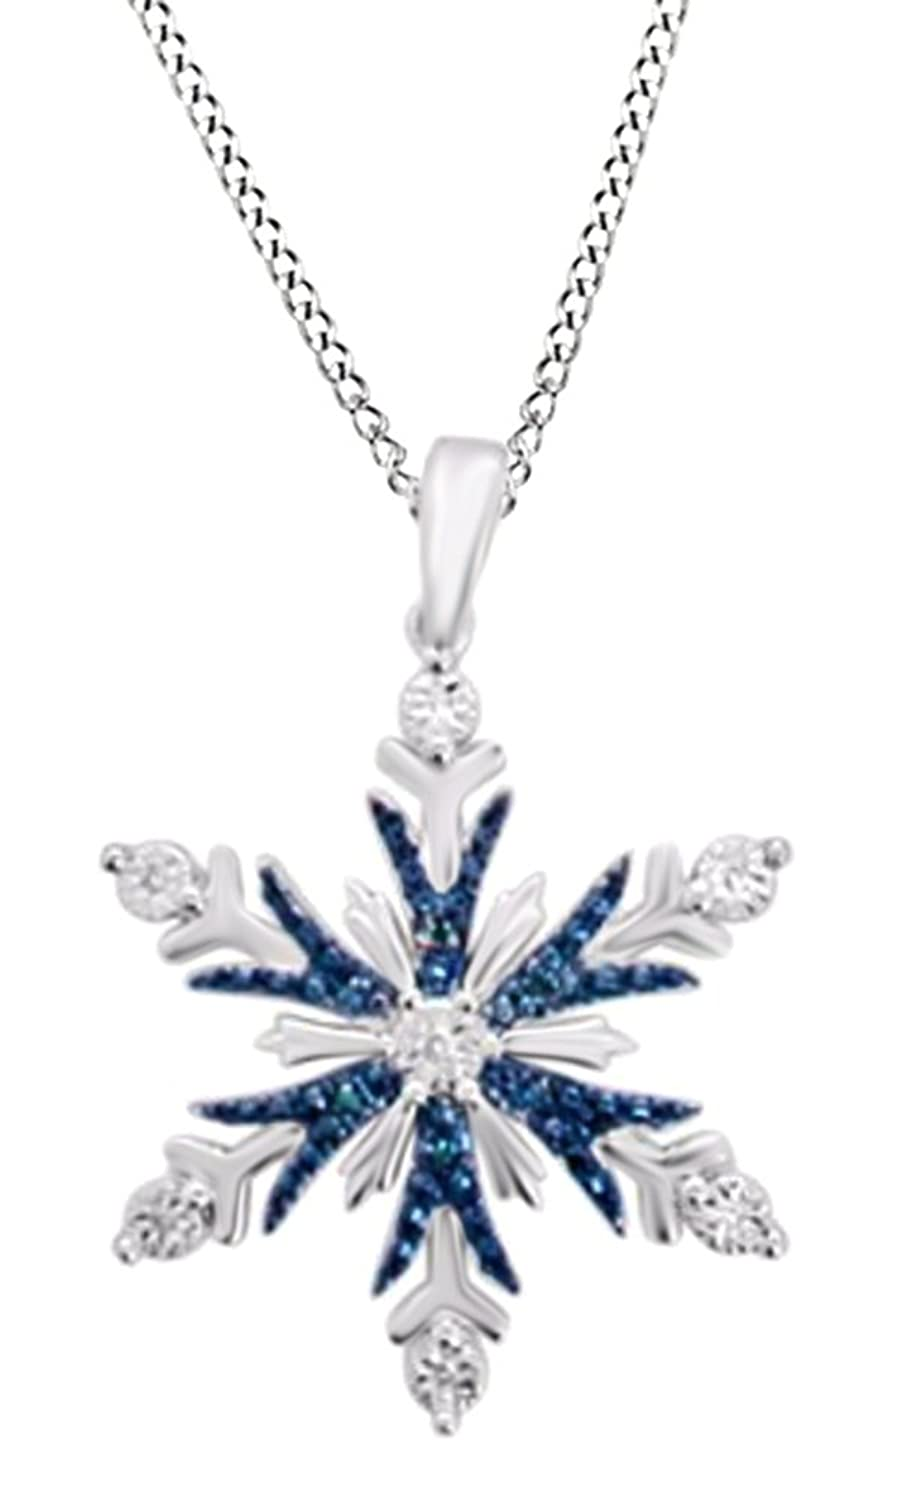 Blue & White Natural Diamond Accent Snowflake Pendant Necklace in 14K Gold Over Sterling Silver